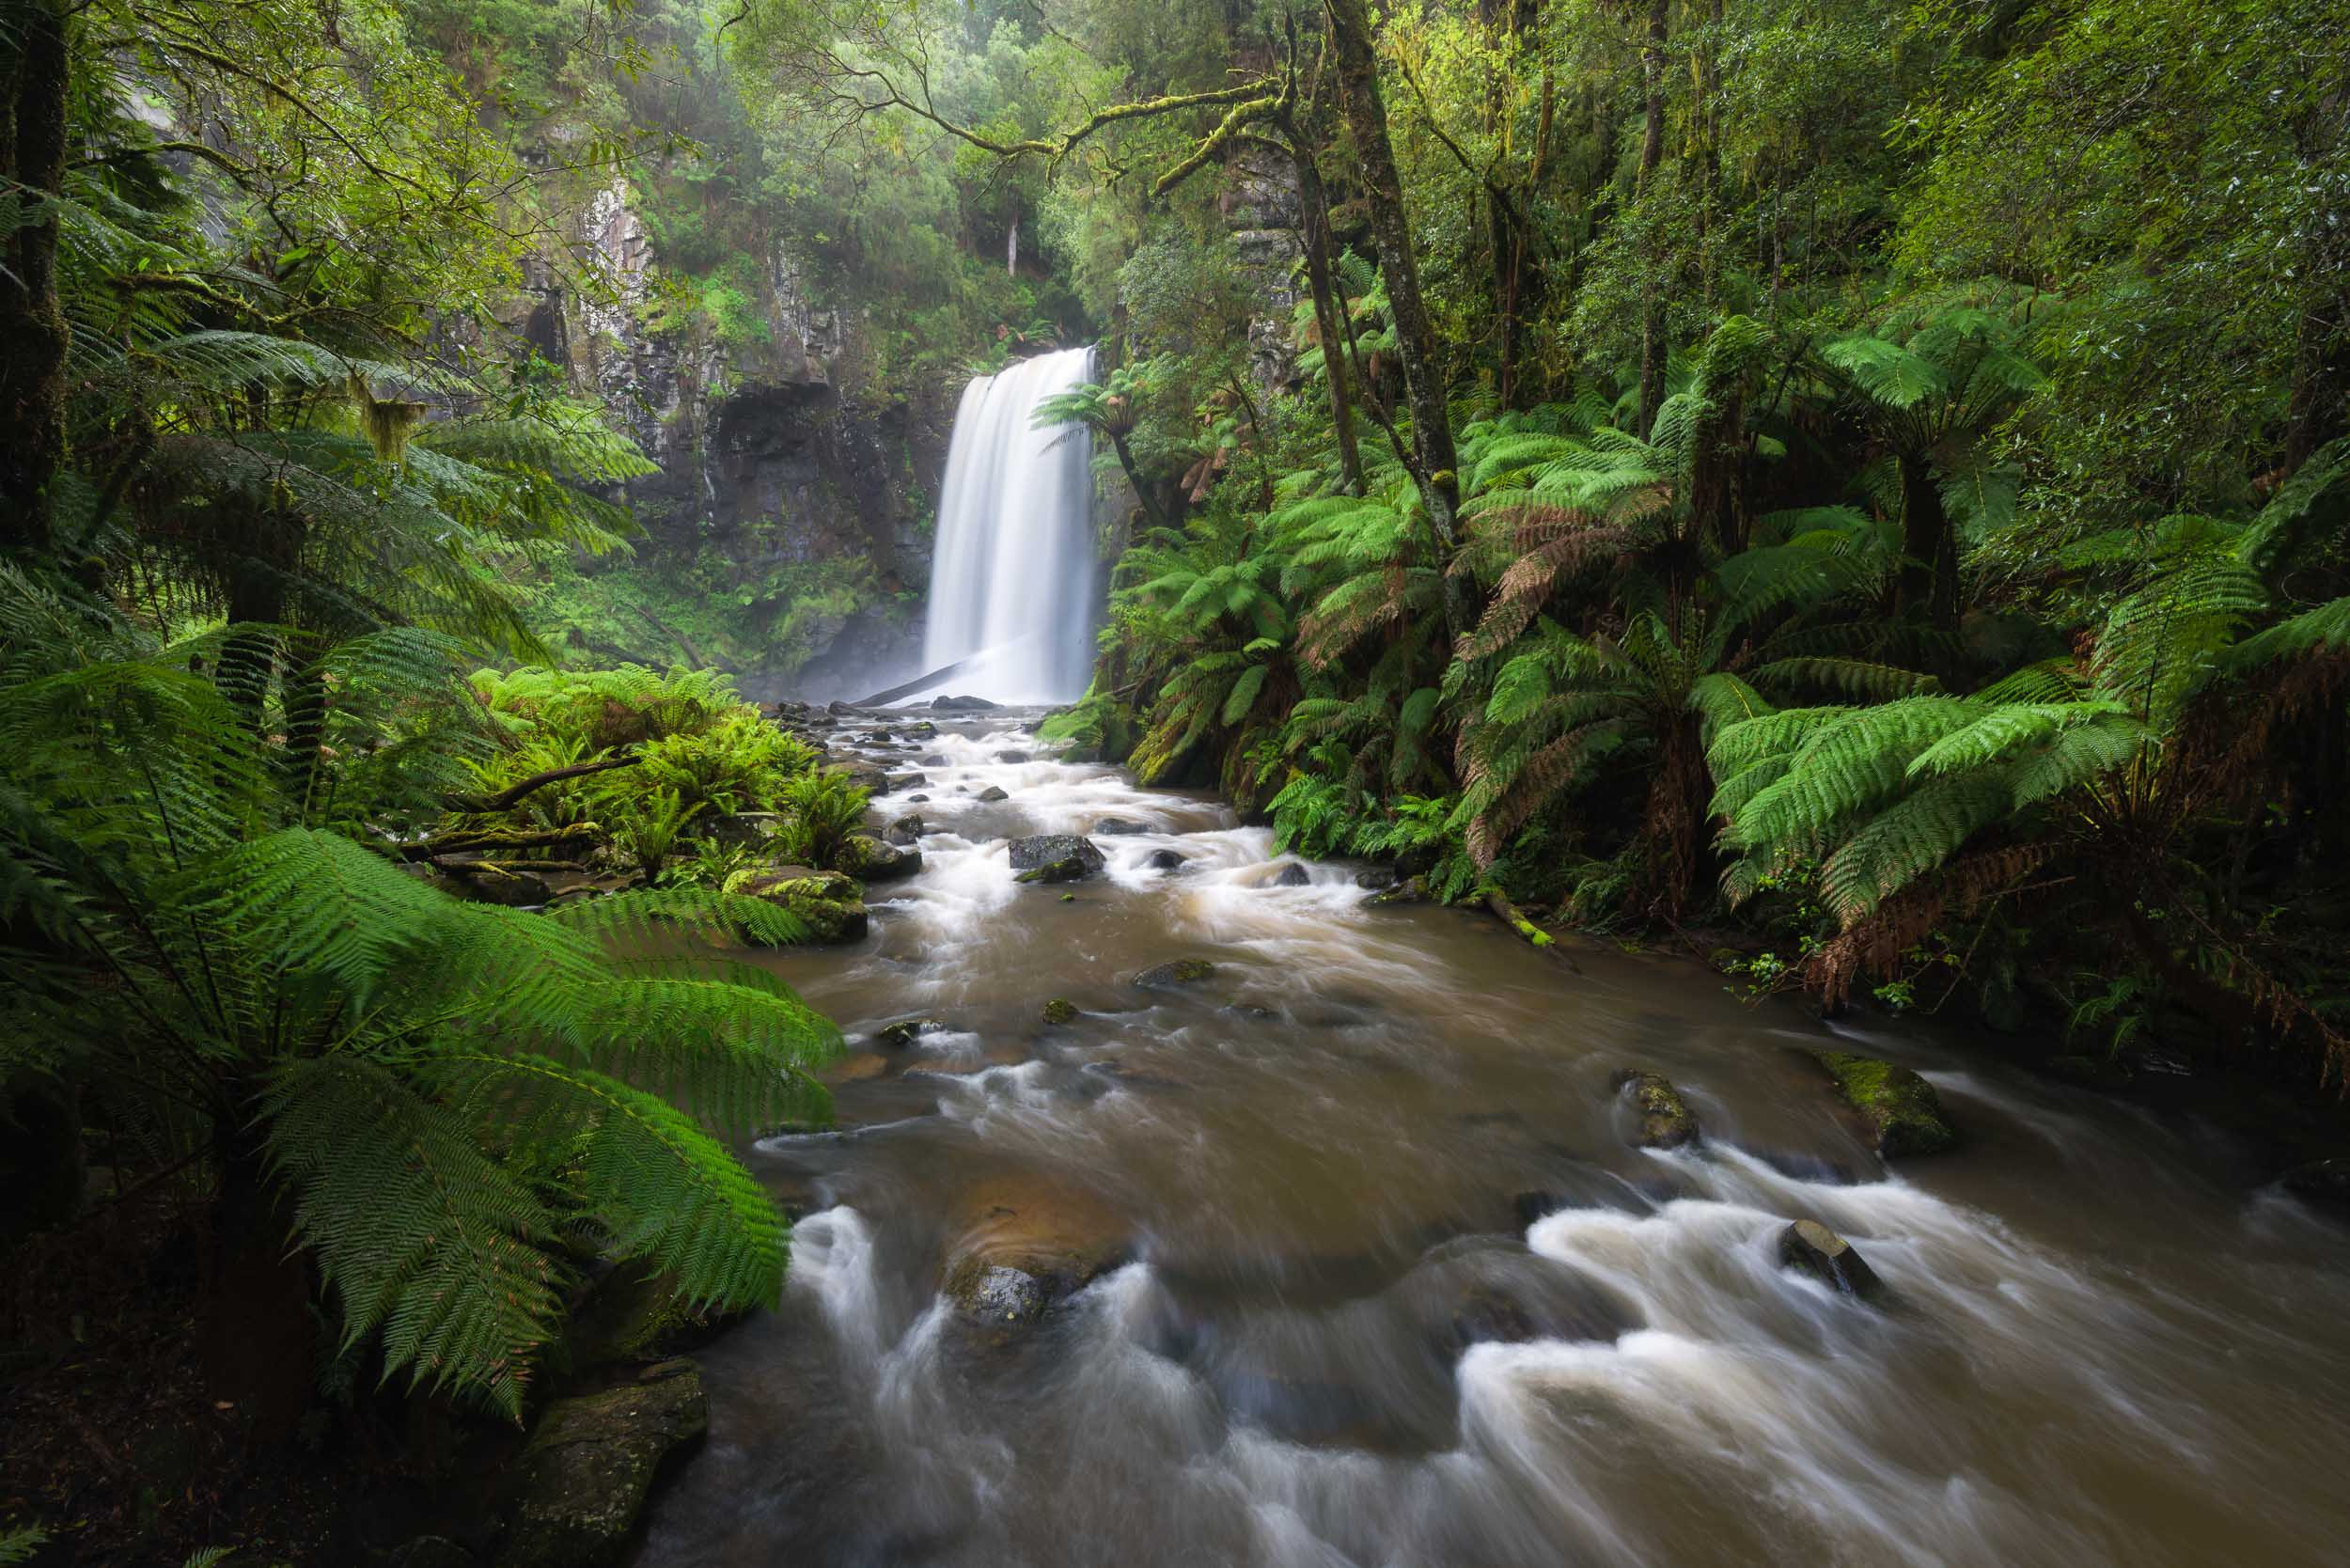 Waiting for Silence - Hopetoun Falls, Great Otway National Park - Victoria